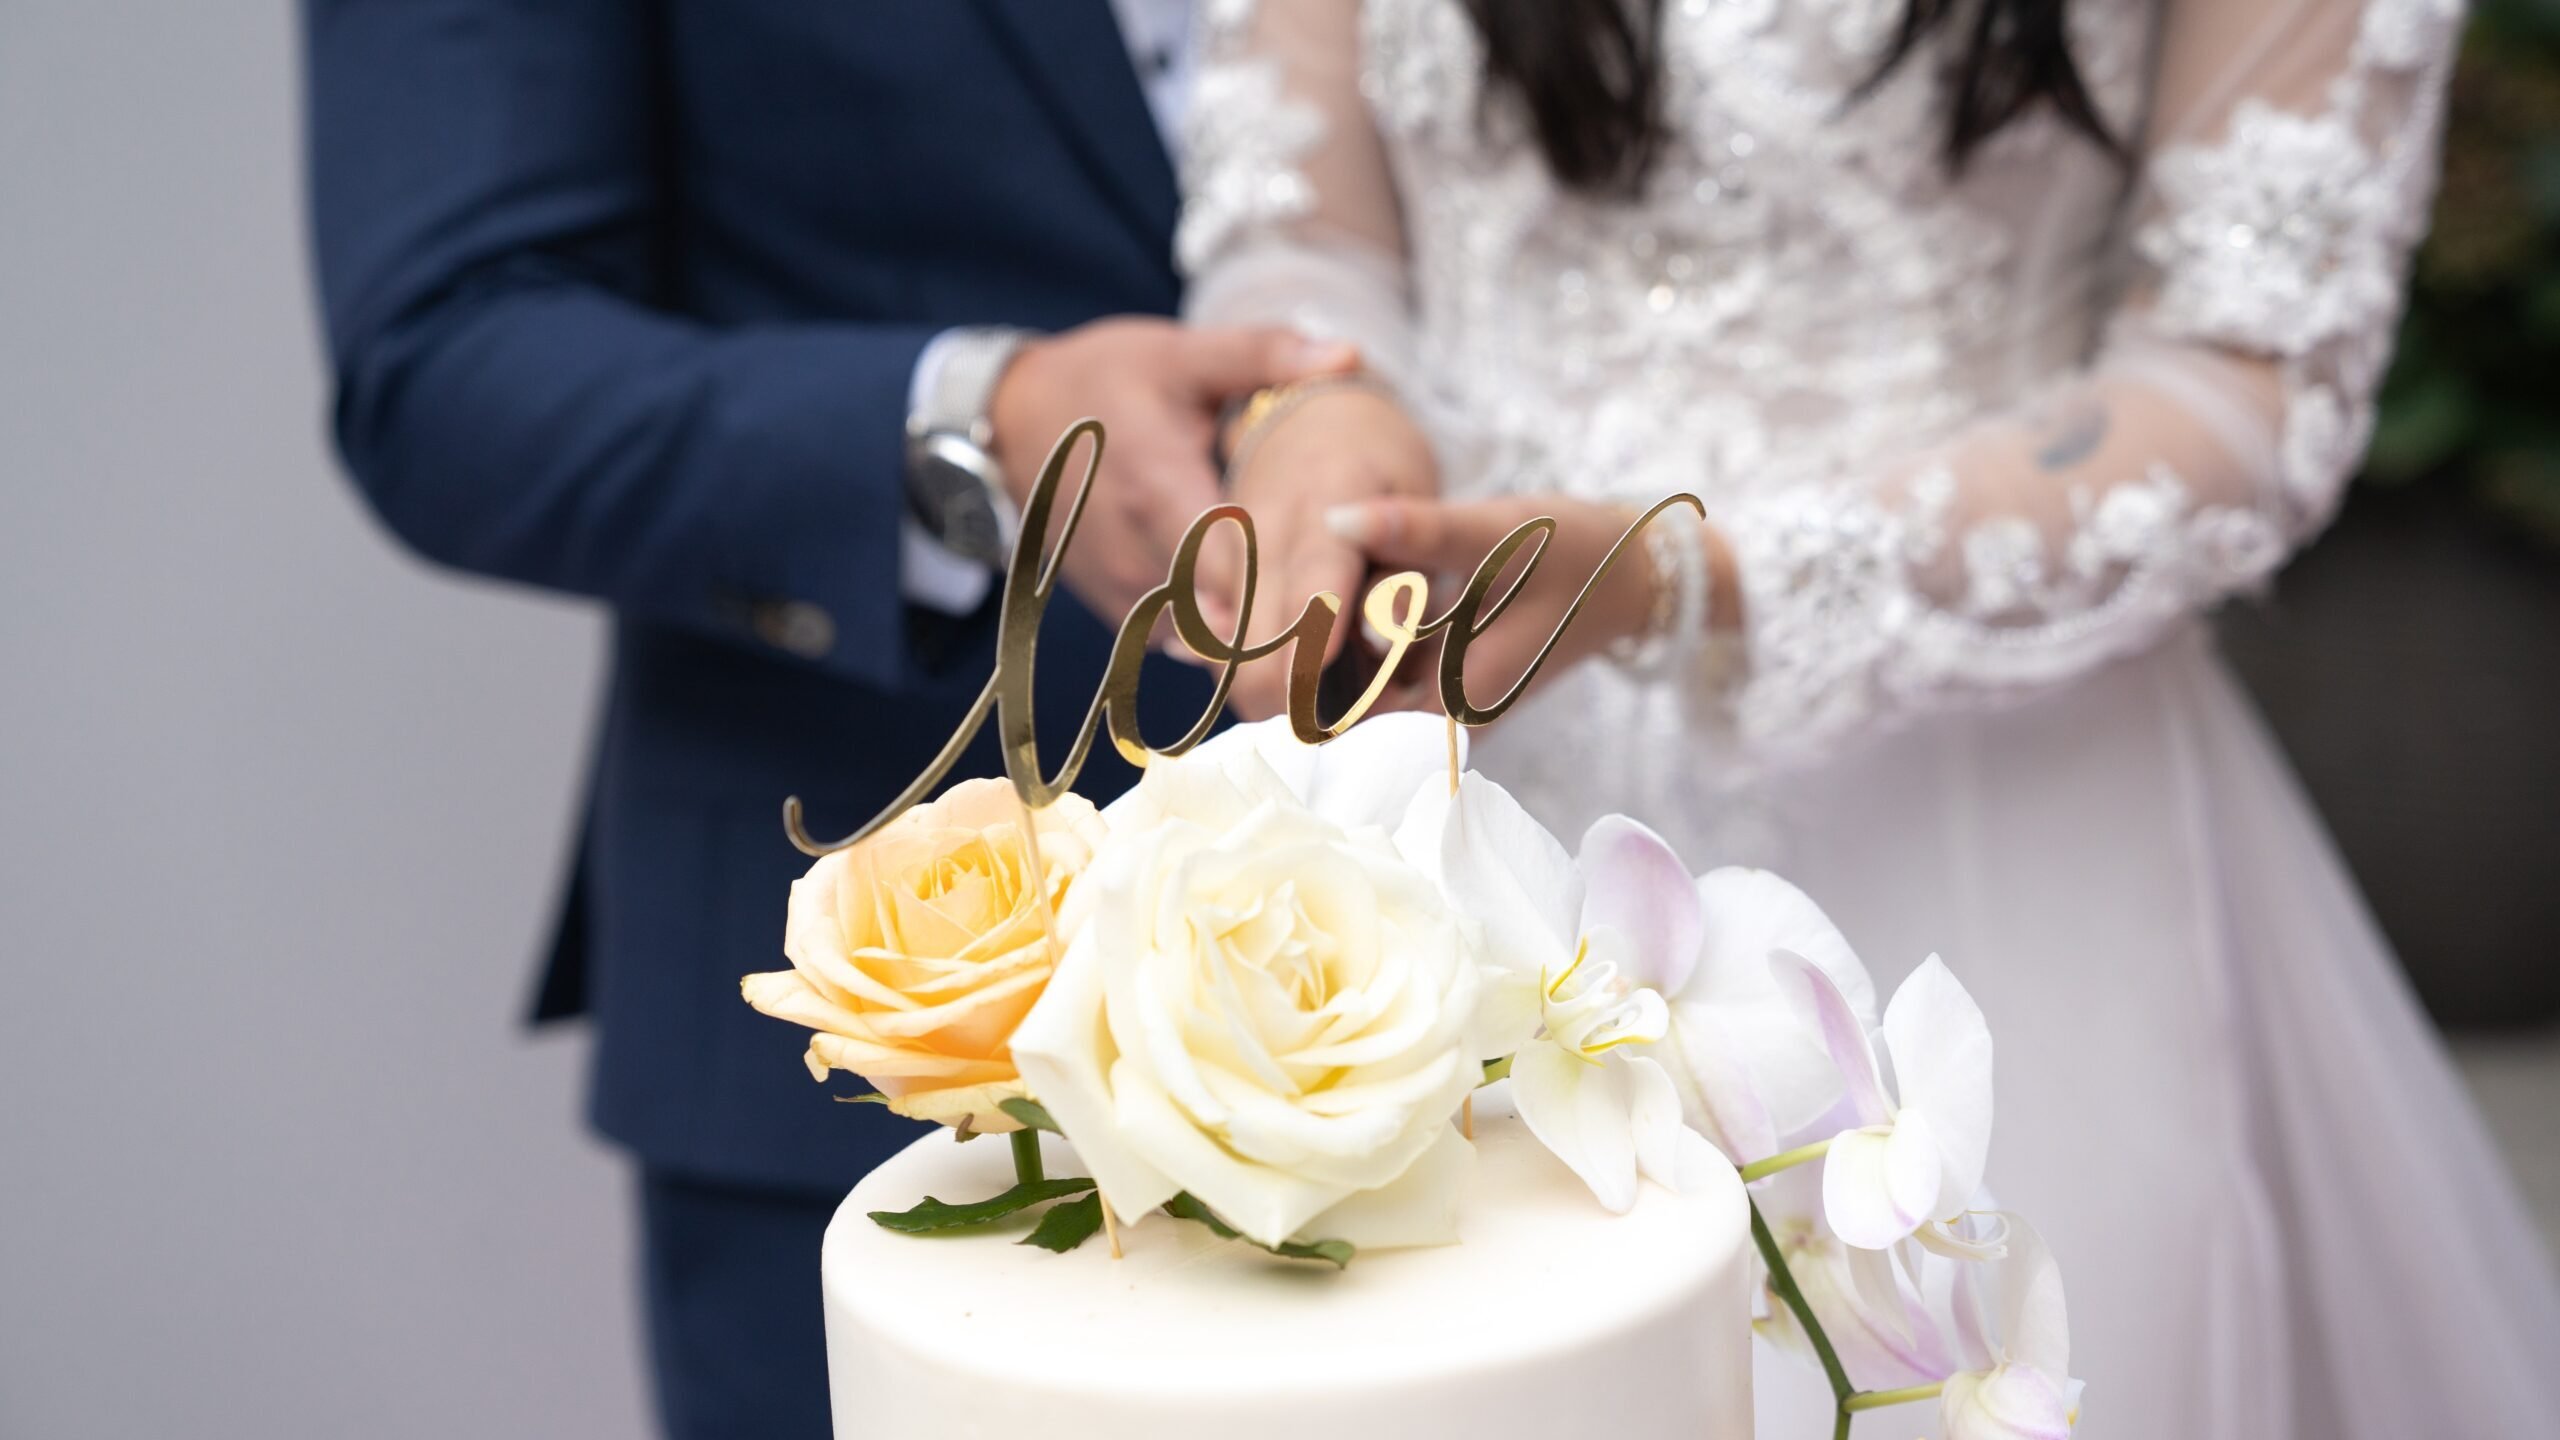 Cut The Cake? As Pandemic Recedes, Cost Of Getting Hitched Heads Through The Roof